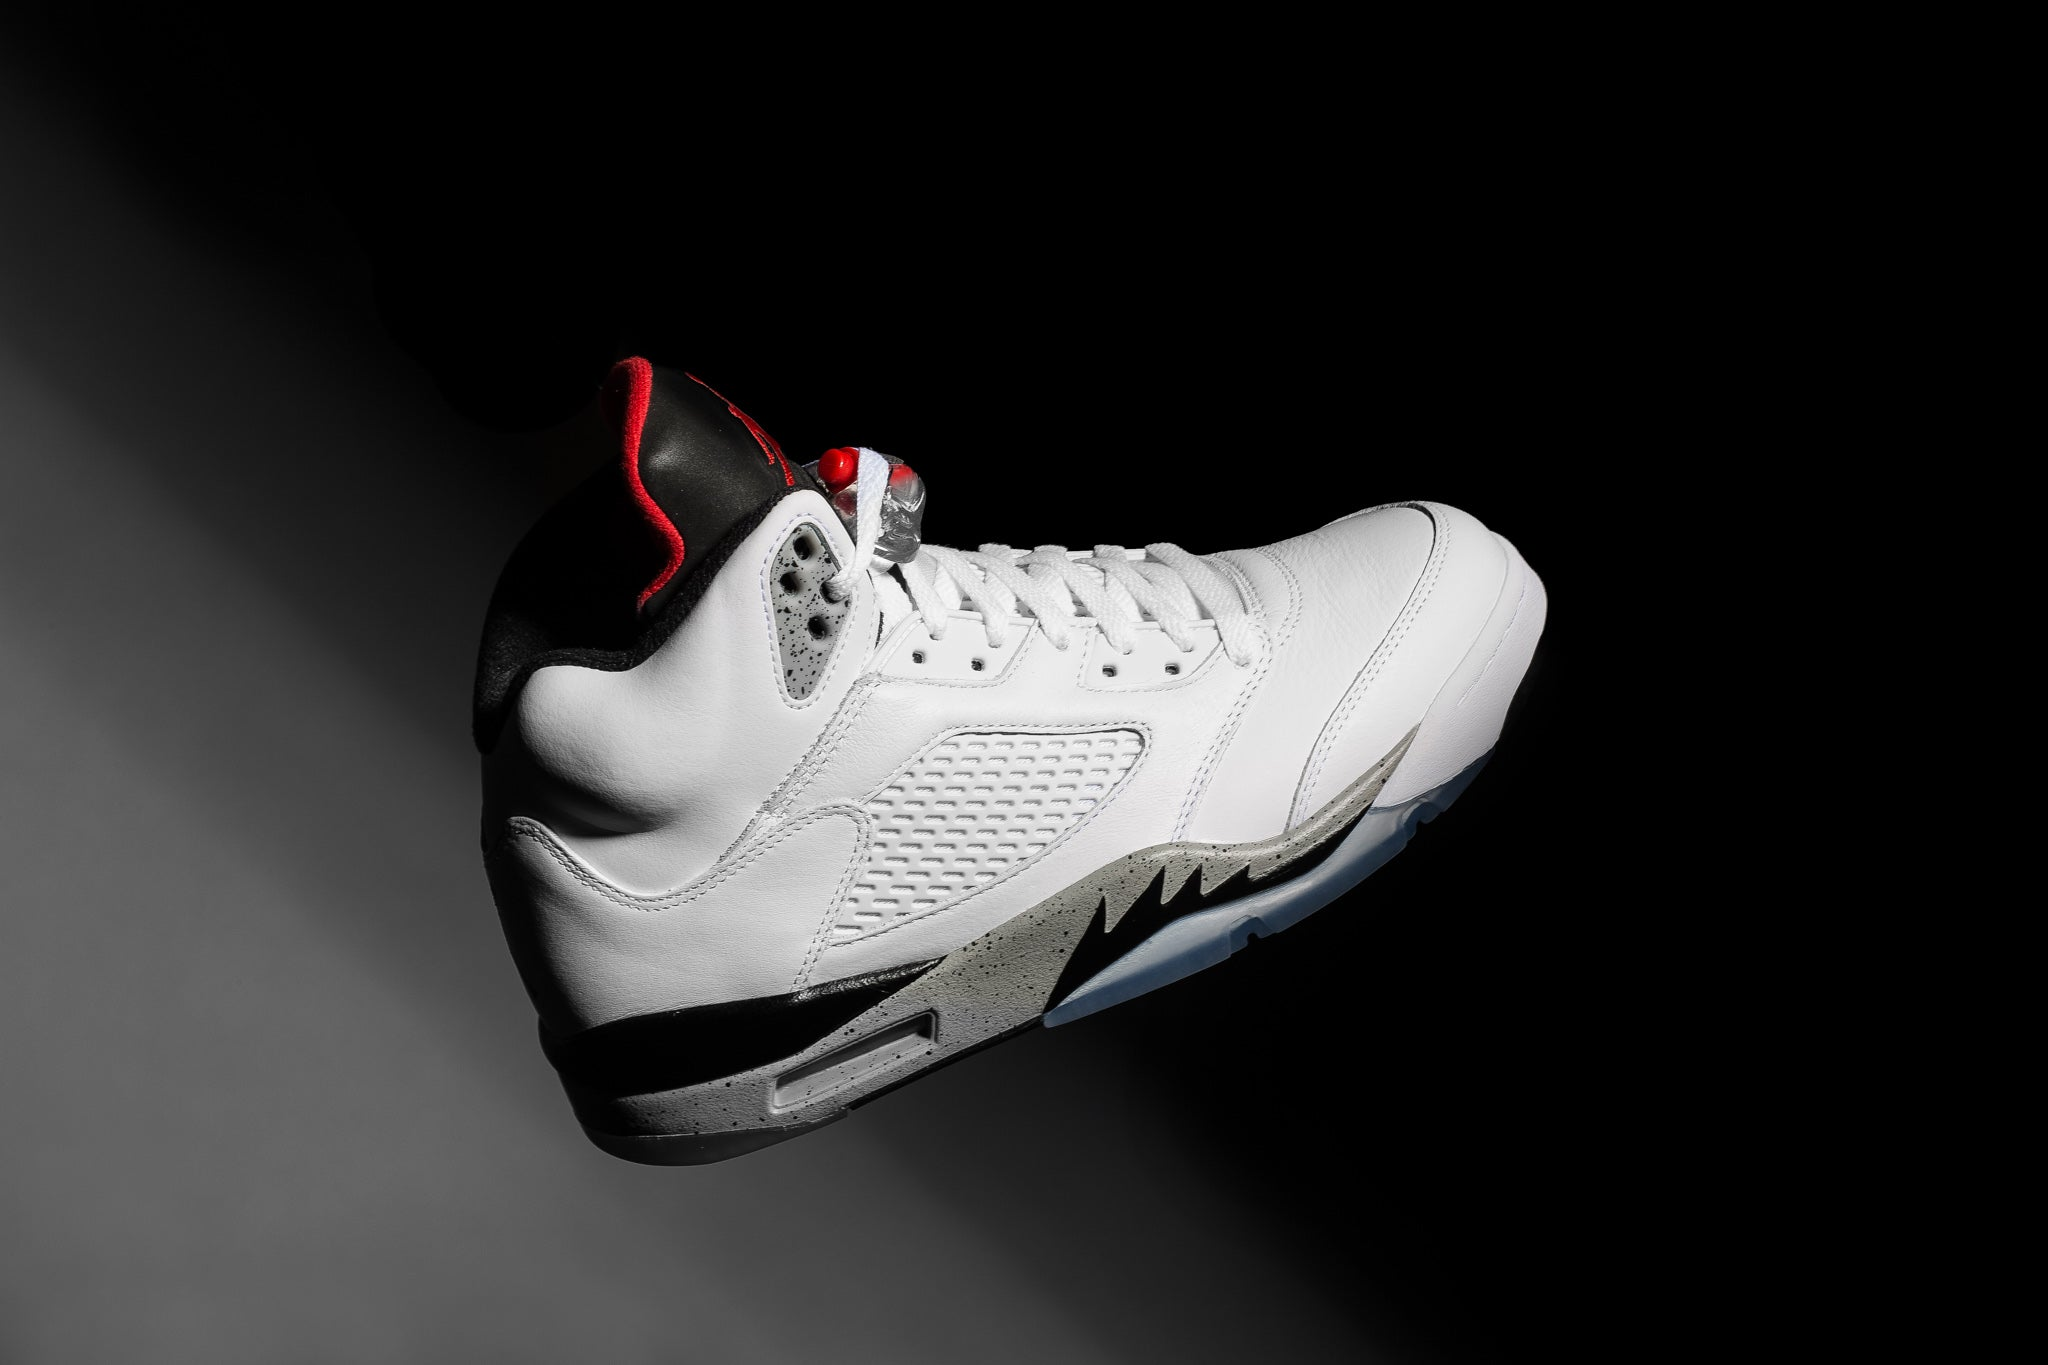 """745dfc26661 ... 4 donning the classic concrete colour scheme, it seems only natural  that the fifth entry to the legacy continue the tradition. The Air Jordan 5  Retro """" ..."""